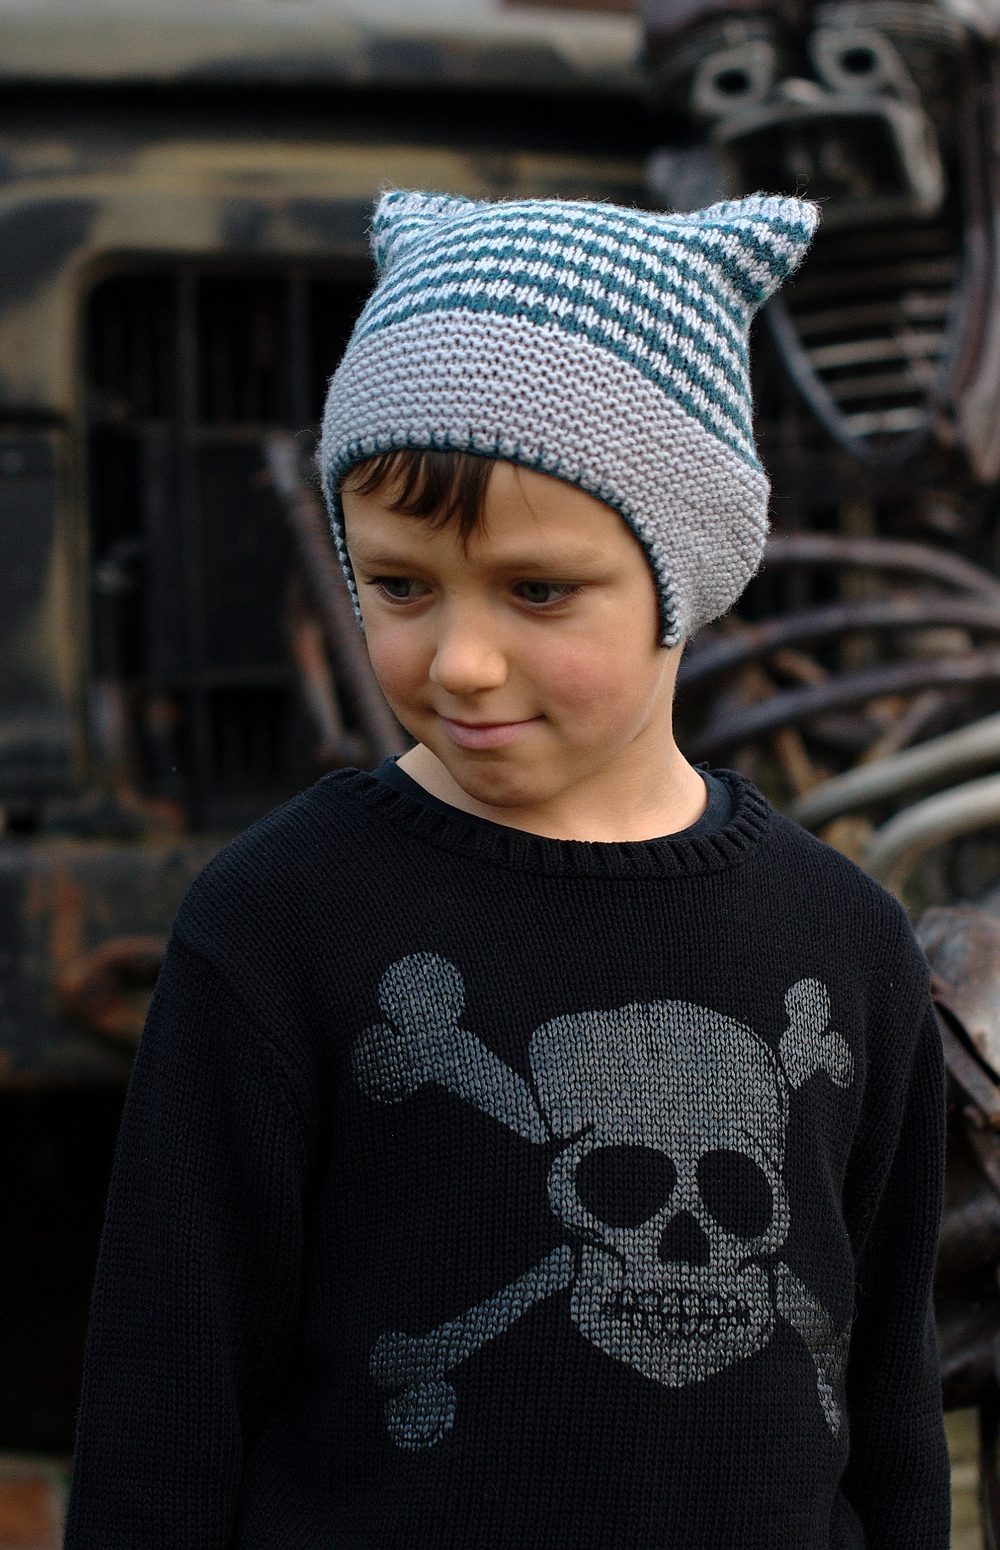 Pinion skater style chullo Hat knitting pattern